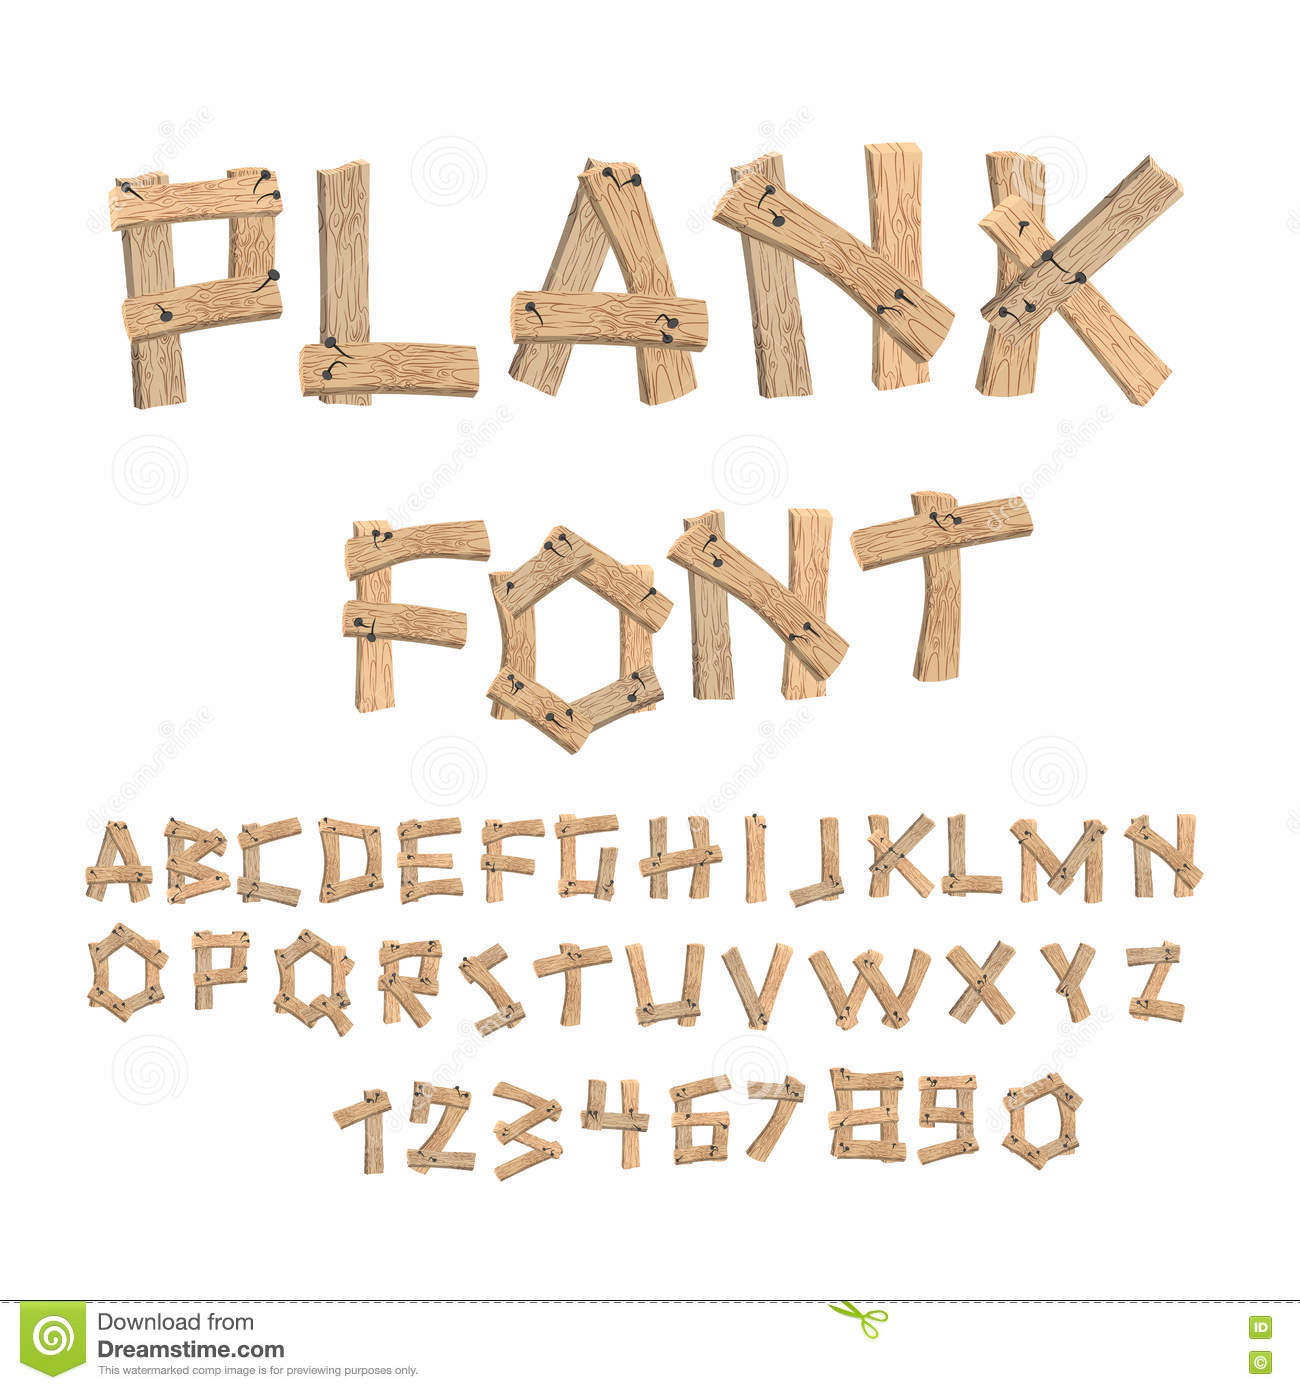 Plank font wooden table alphabet old boards with nails